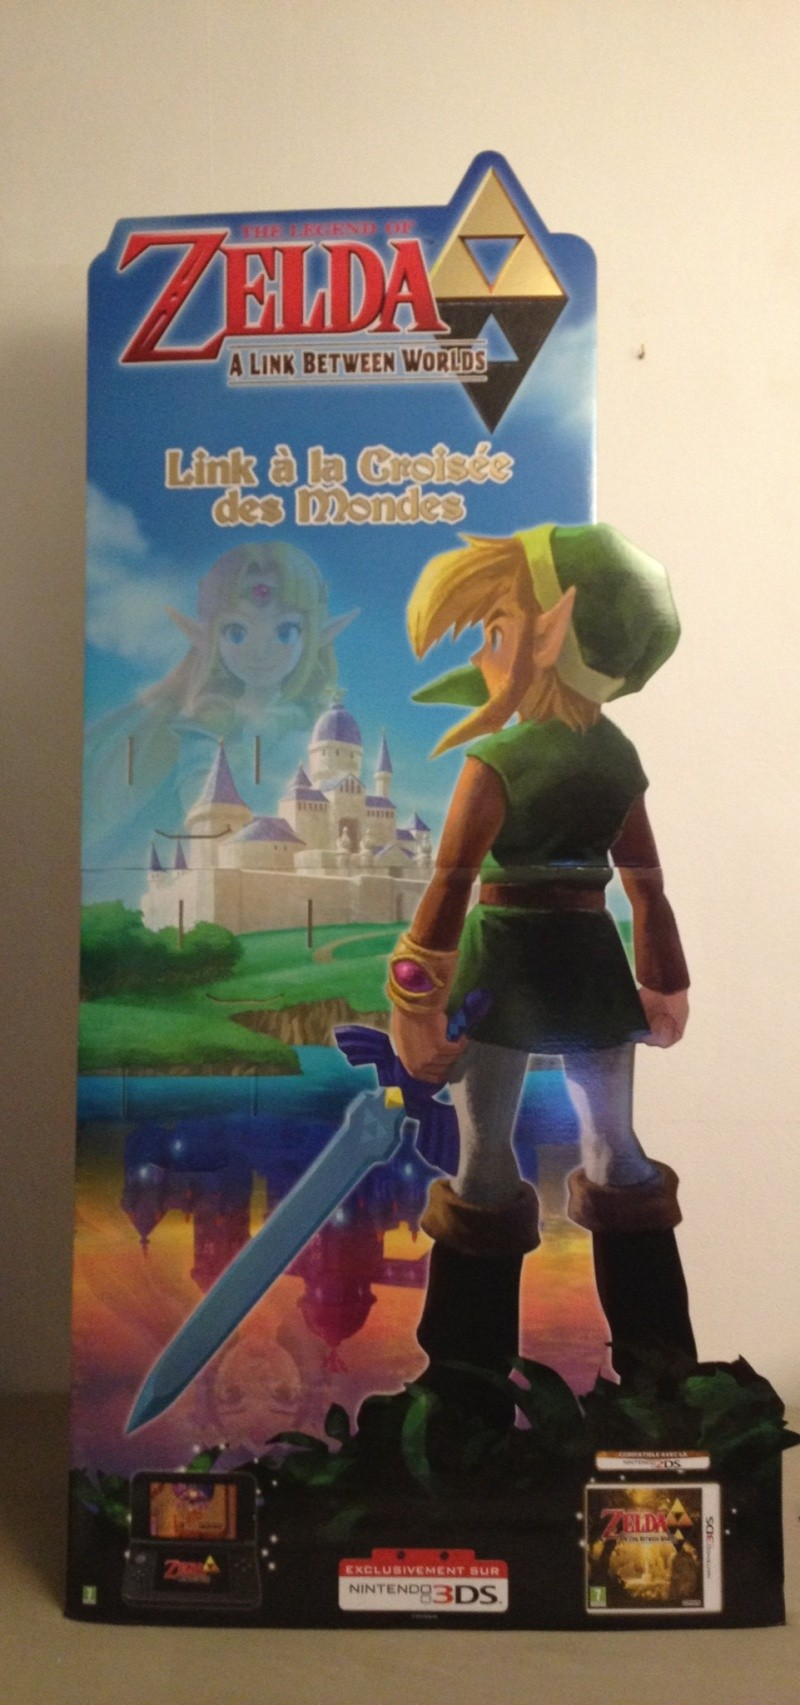 LEGO ZELDA A LINK BETWEEN WORLDS ???? - Page 6 Photo_35